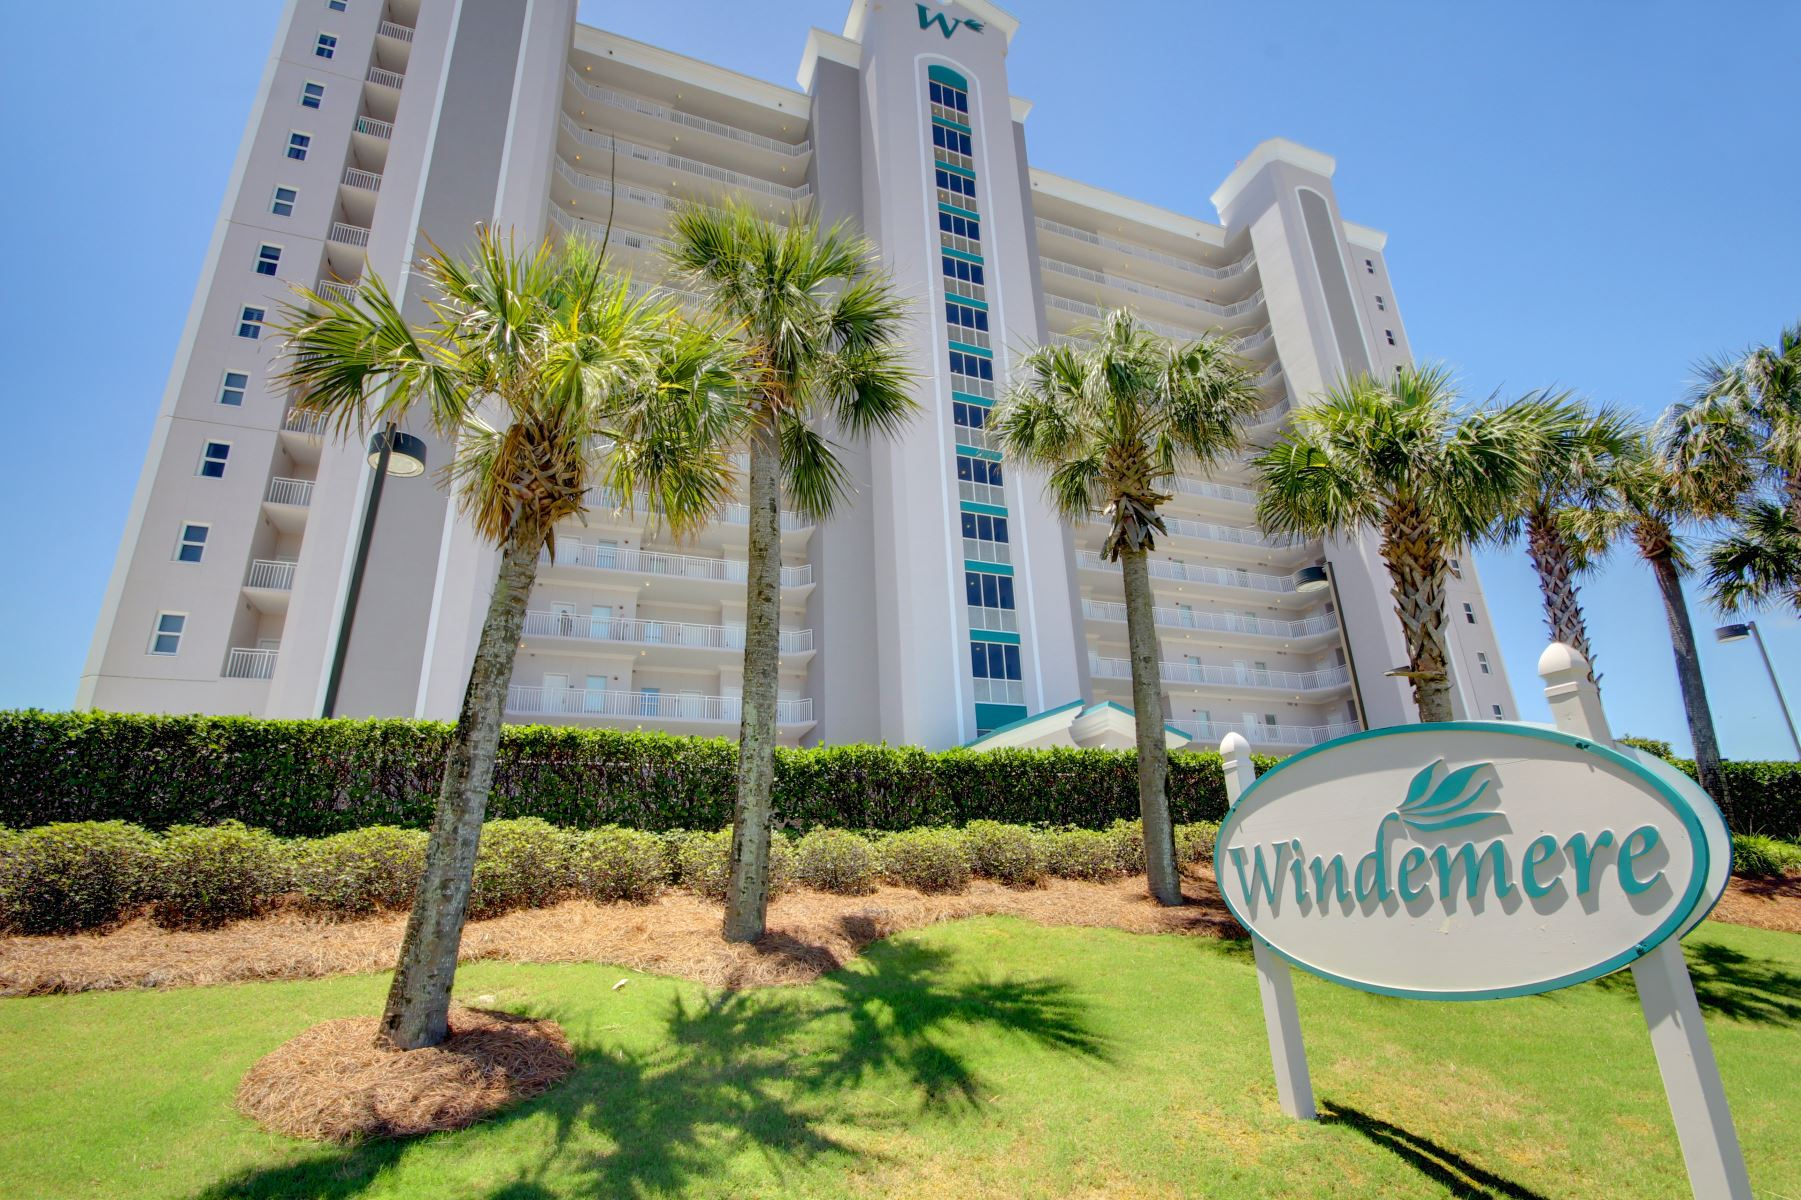 Windemere Perdido Key front of building & sign